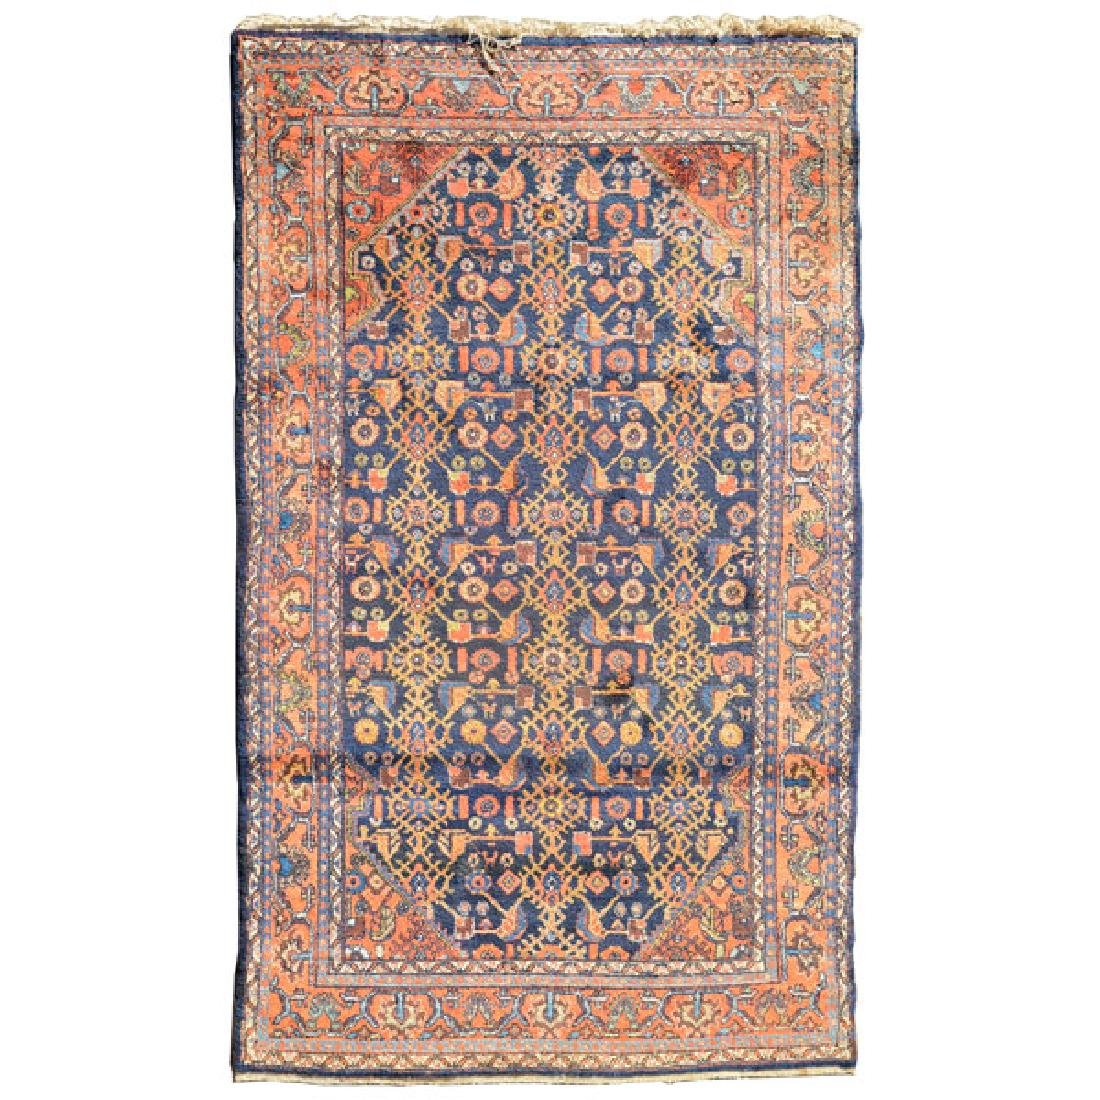 Hamadan Rug: 4 feet 5 inches x 6 feet 9 inches